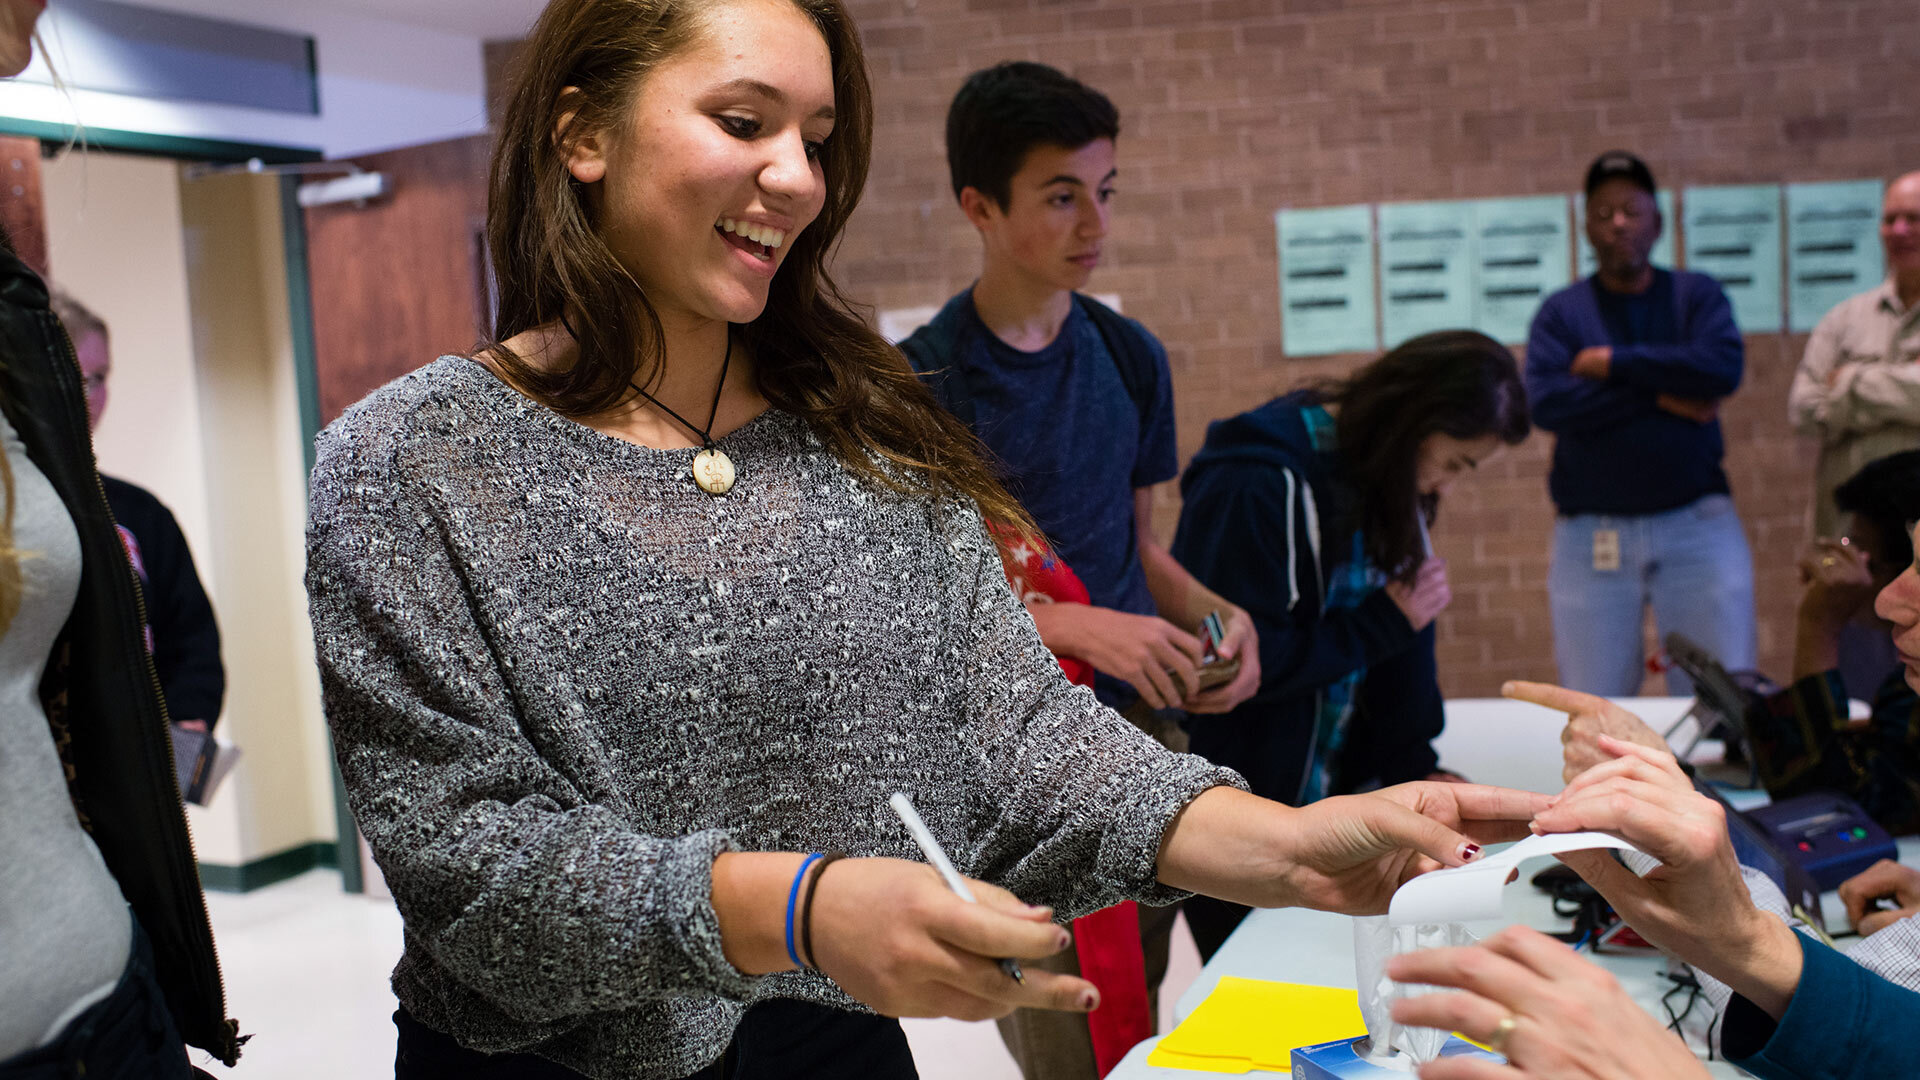 Teen checks in to vote for first time